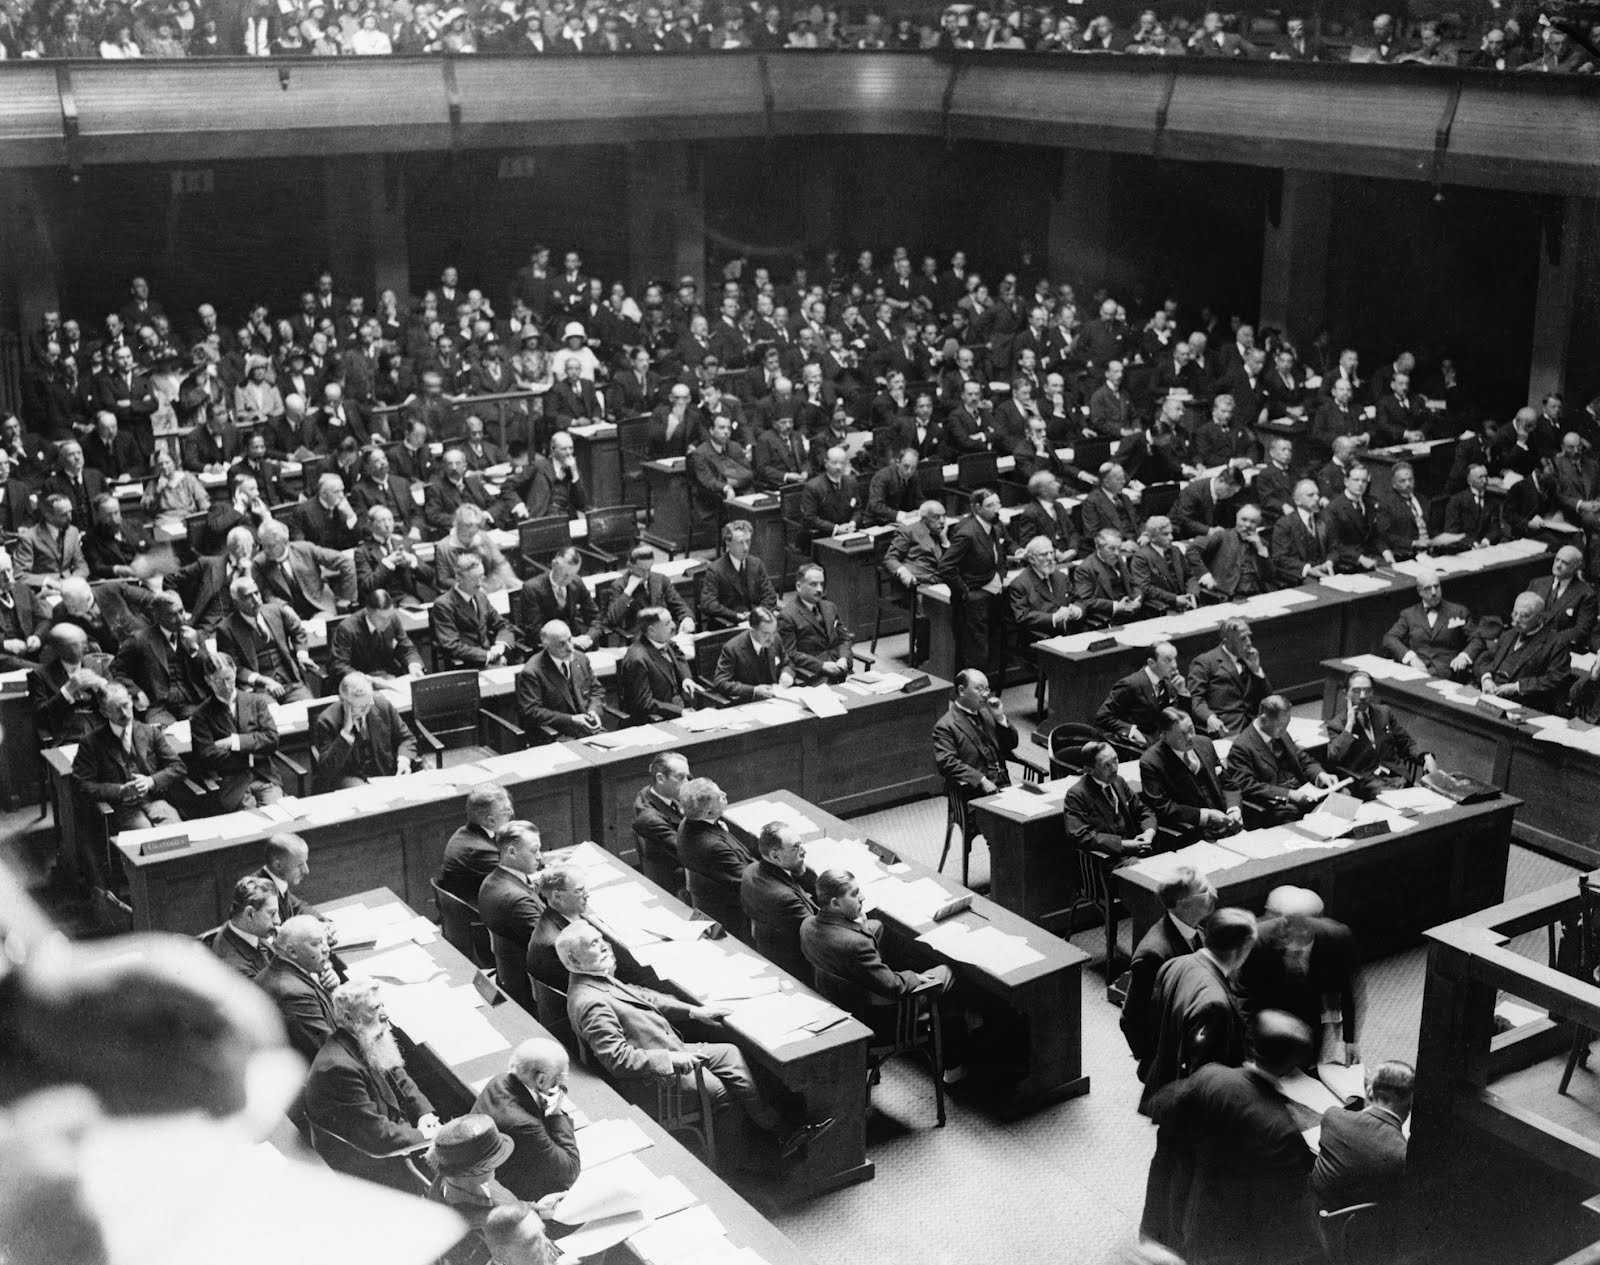 The Conference of the League of Nations in Geneva Switzerland 1924